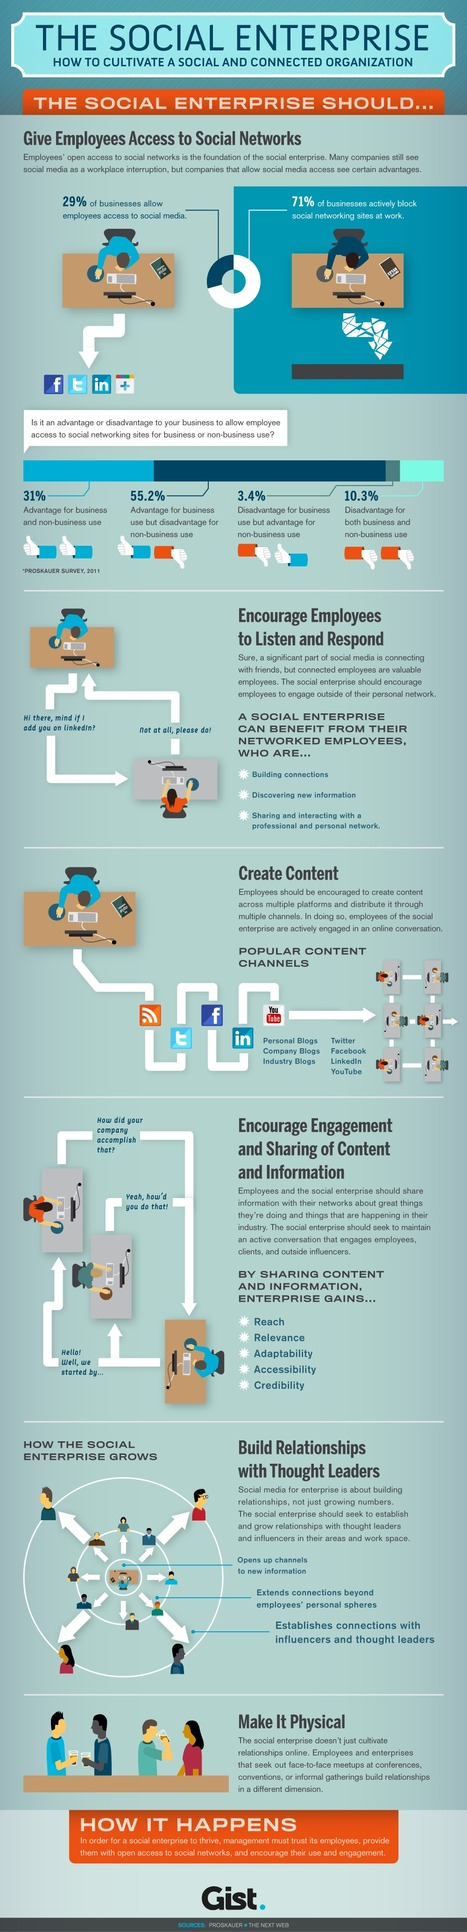 What Does the Social Enterprise Look Like? [infographic] | The Information Professional | Scoop.it